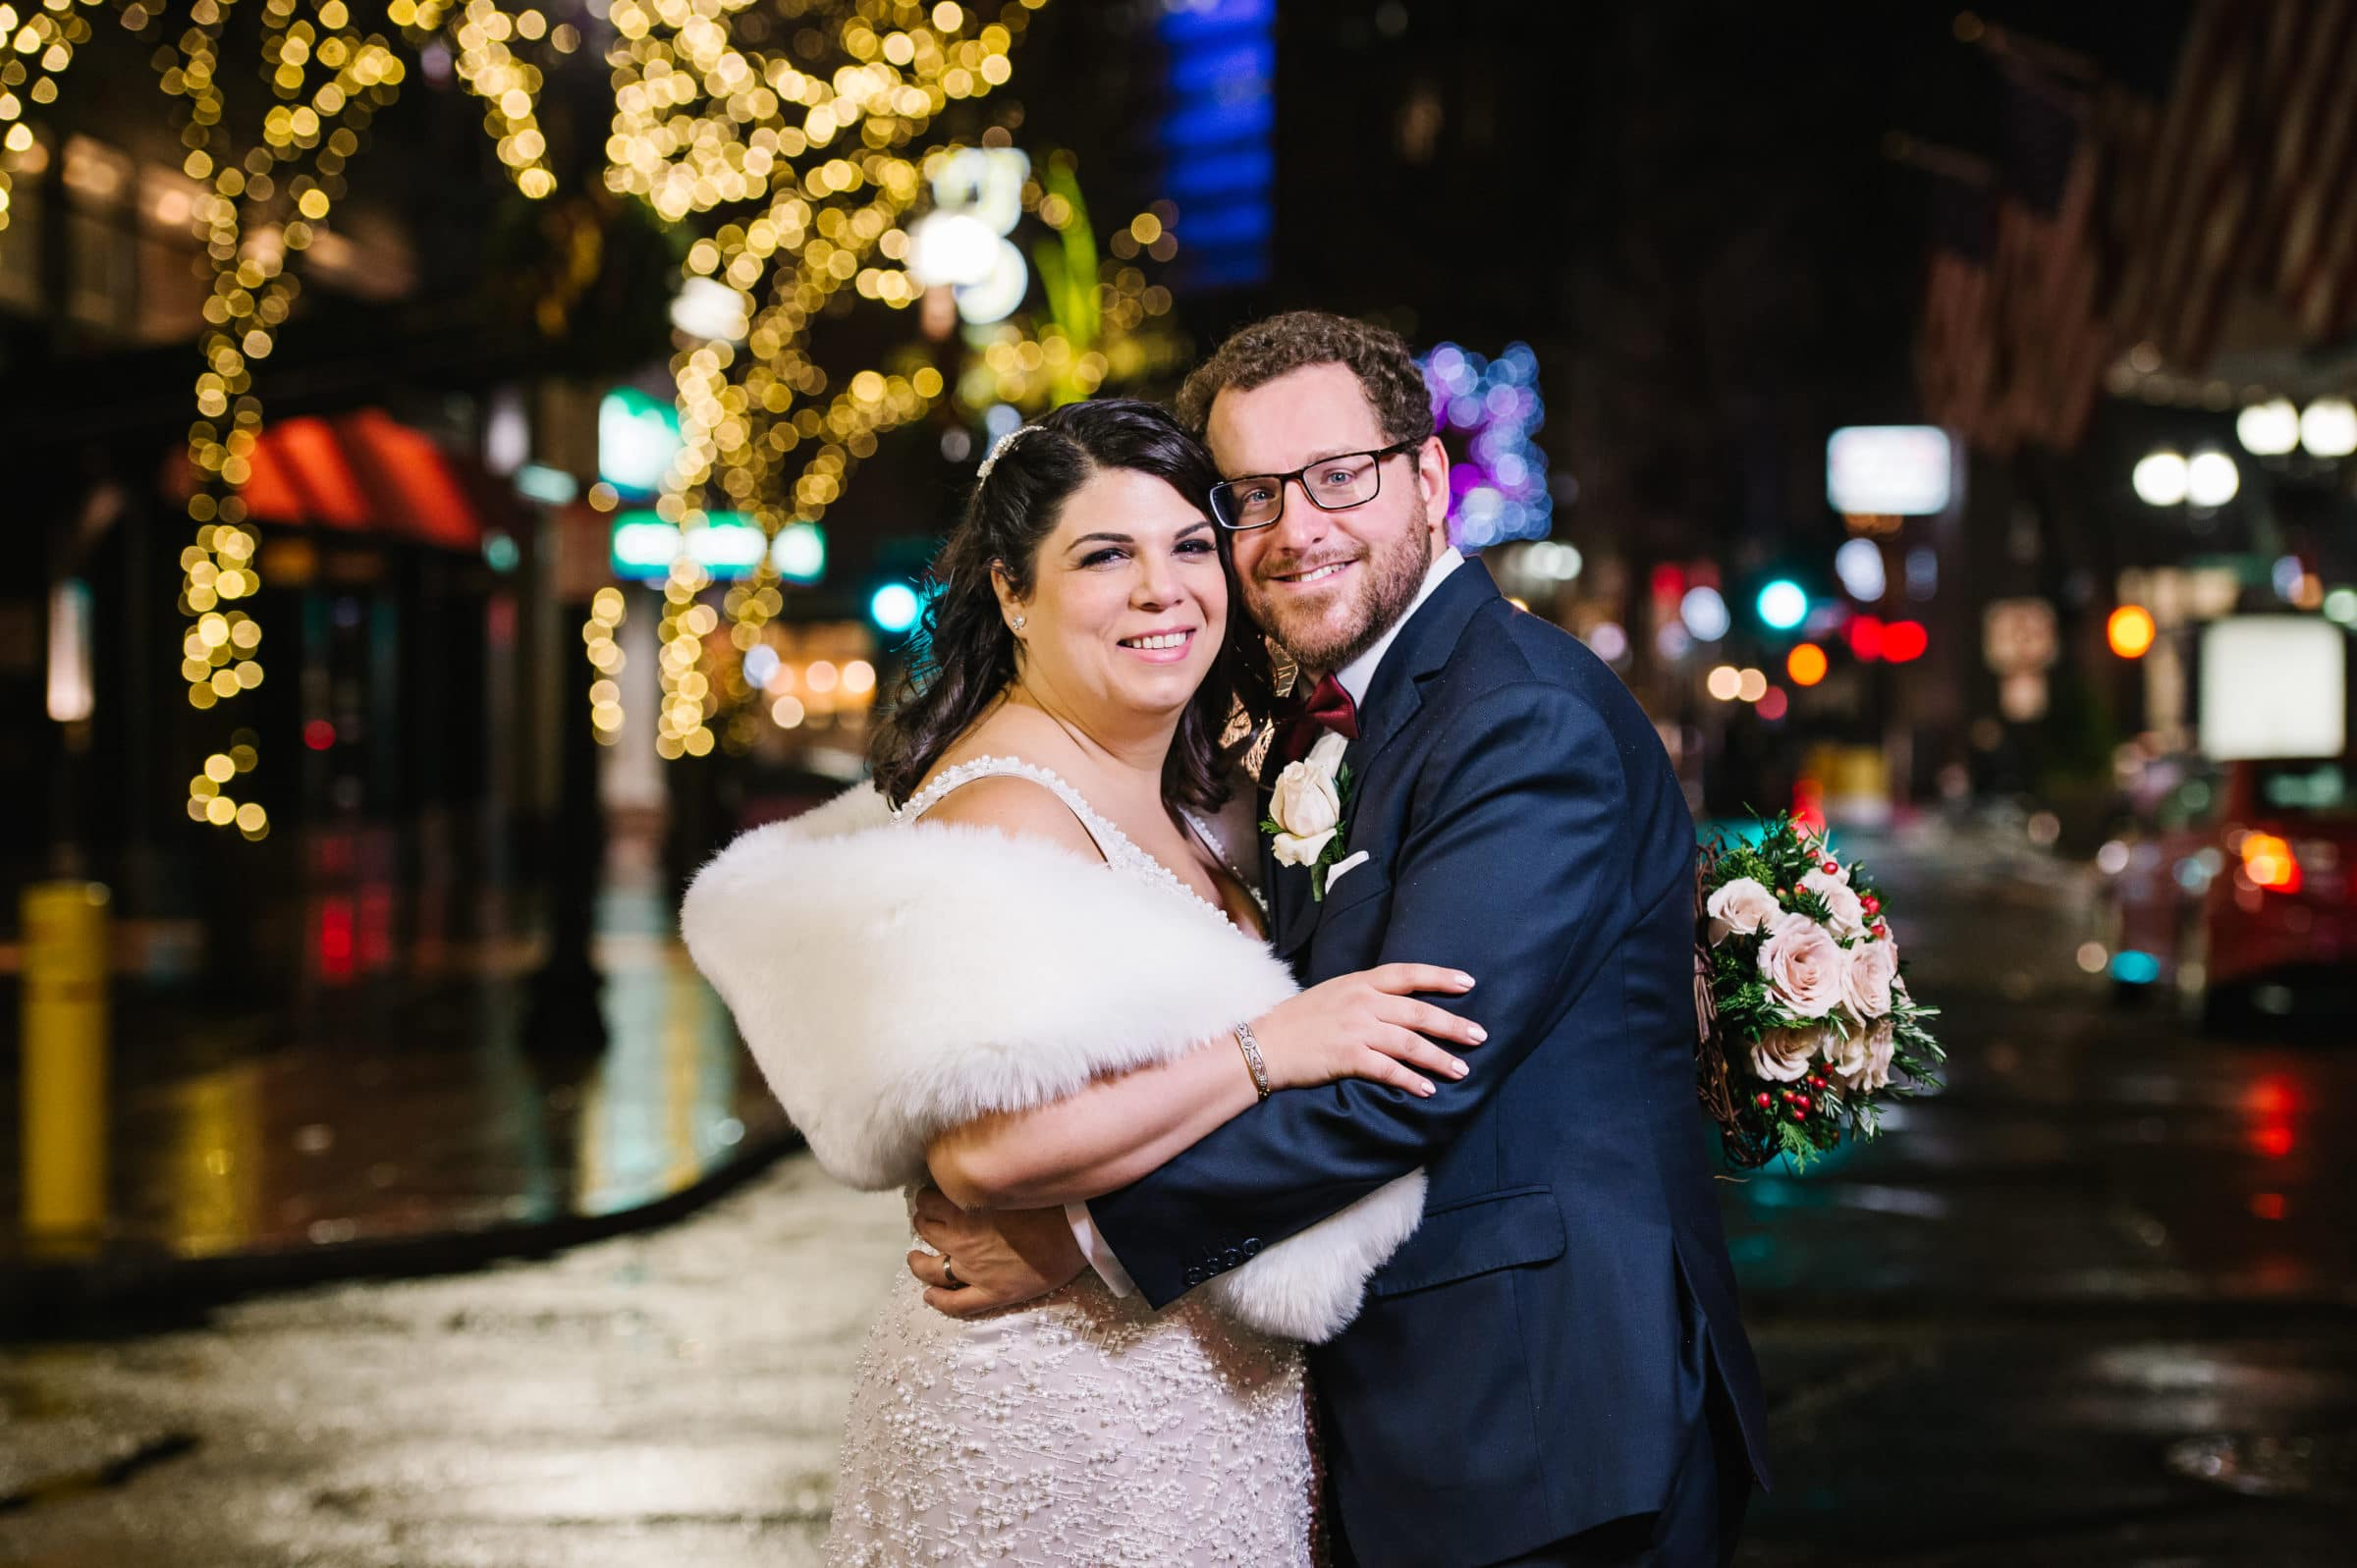 Downtown Crossing Boston winter wedding